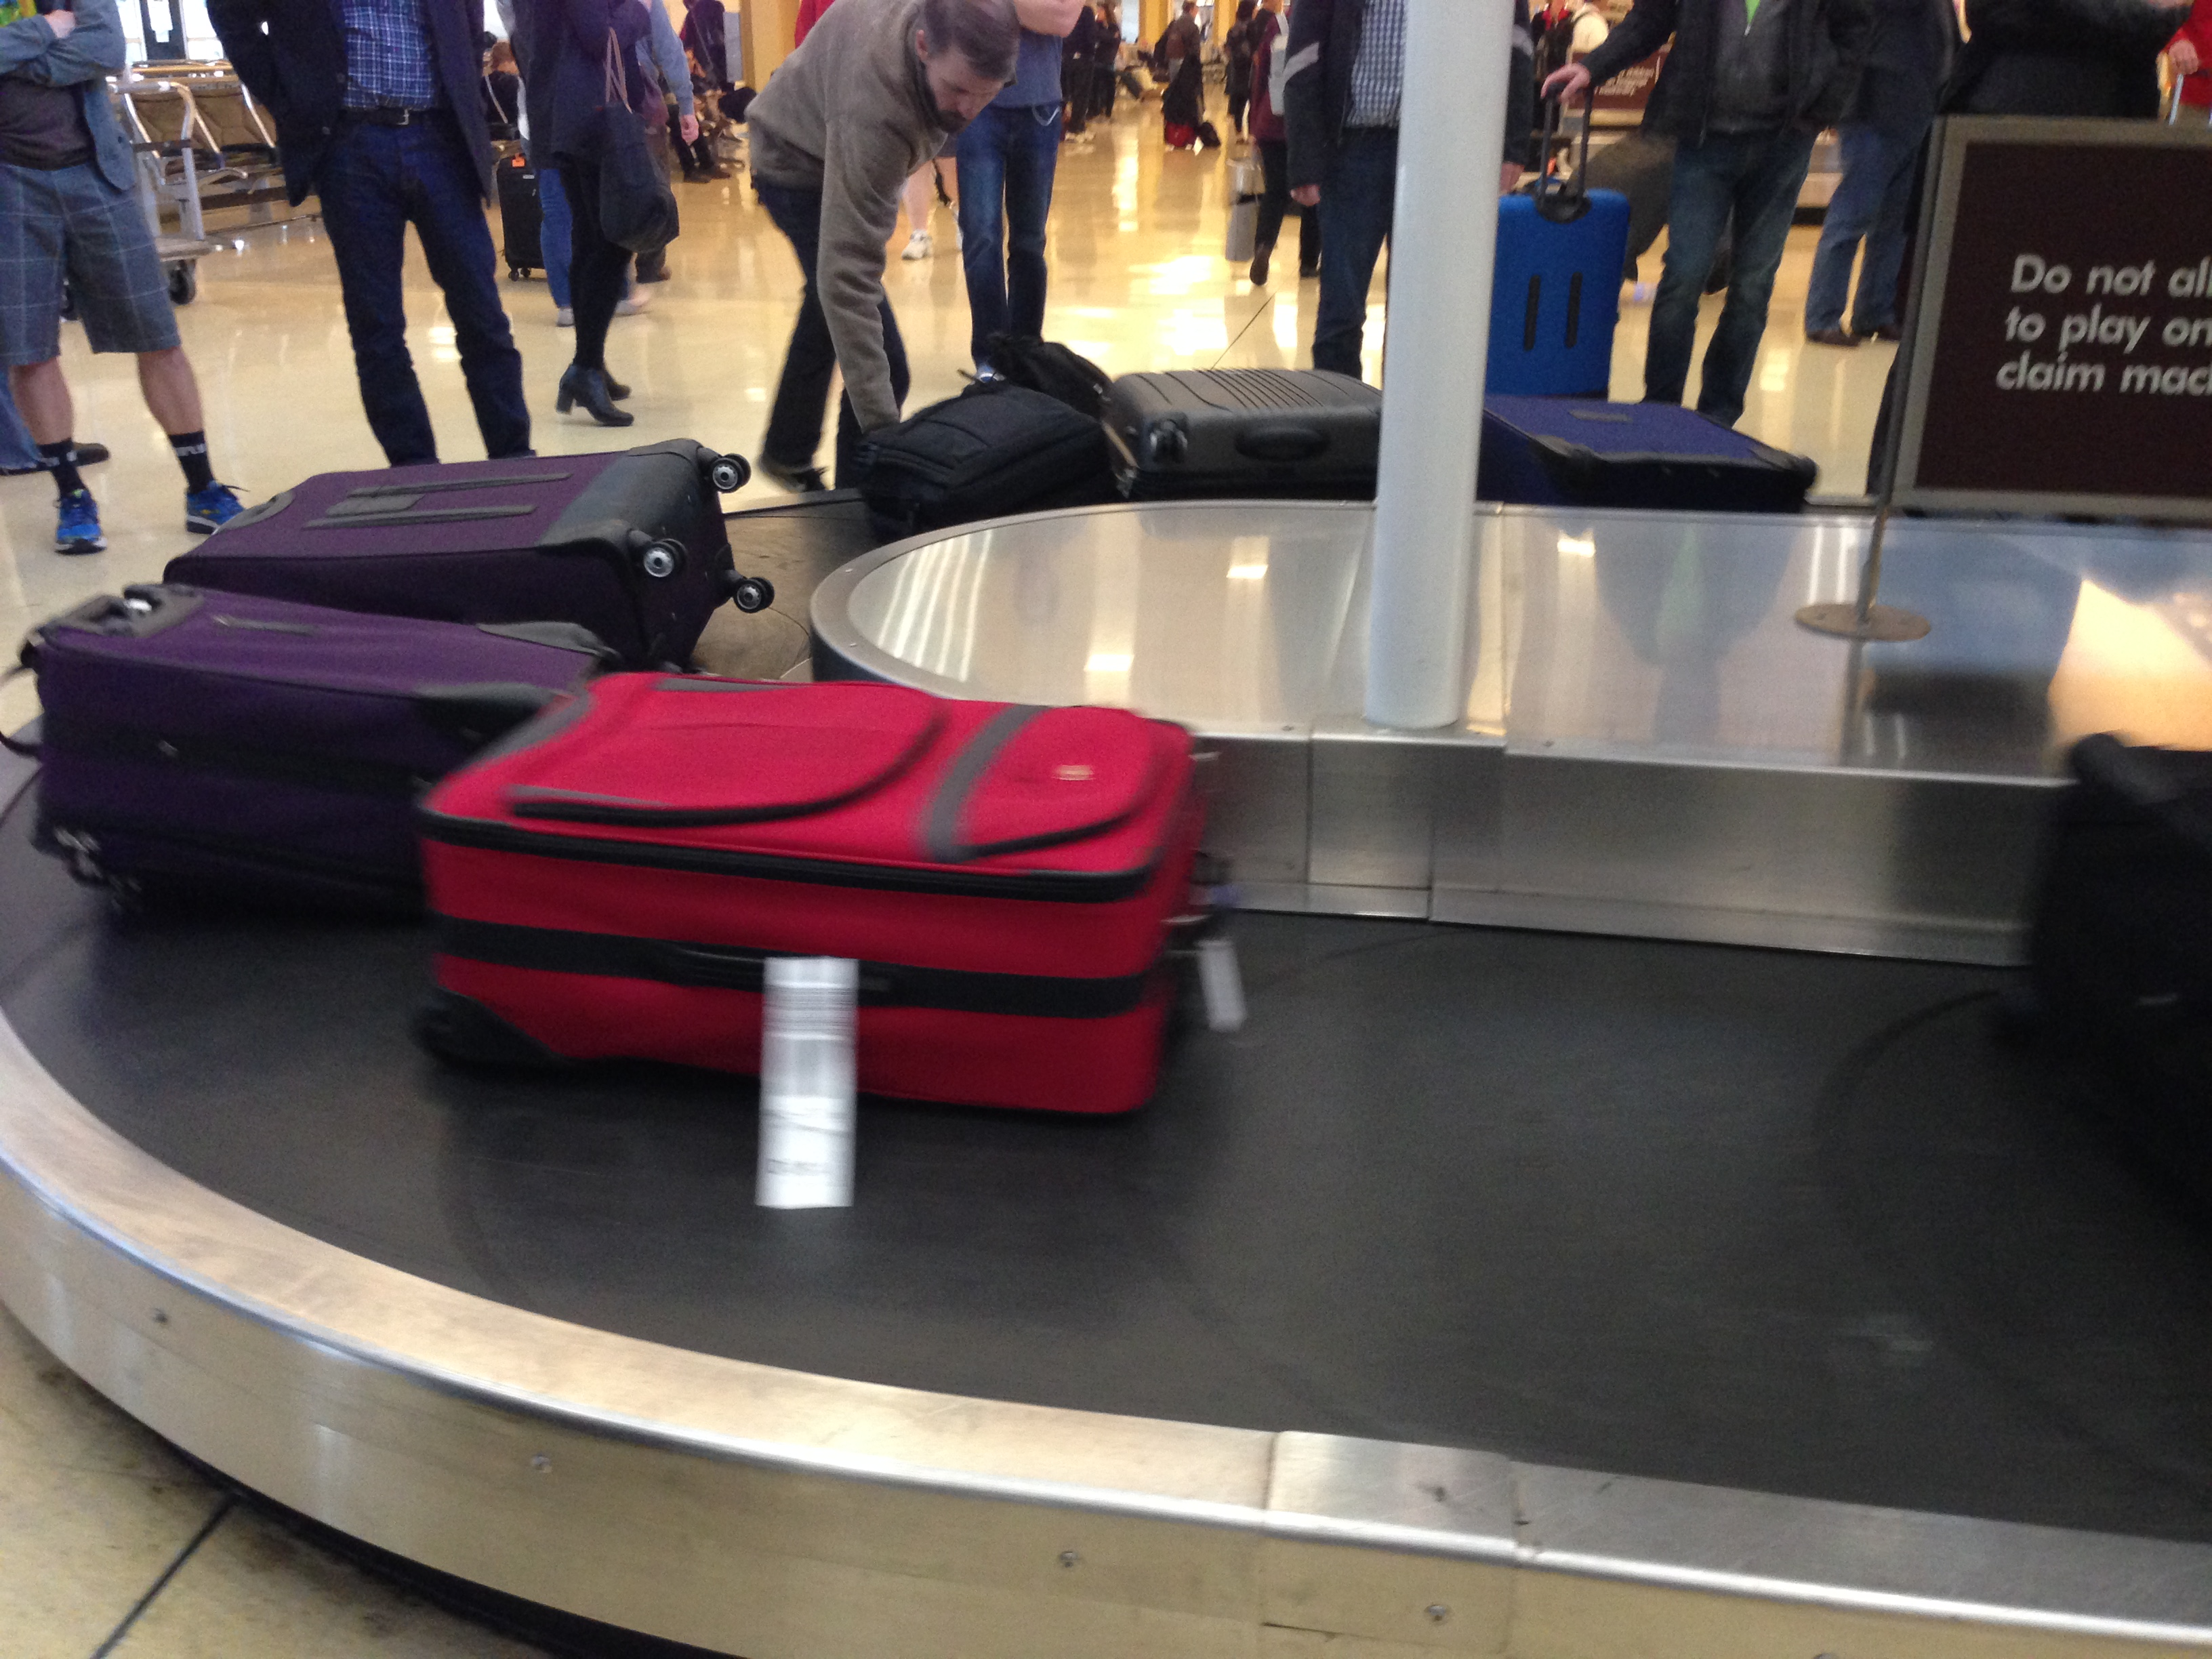 Luggage at DC Reagan Copyright Shelagh Donnelly